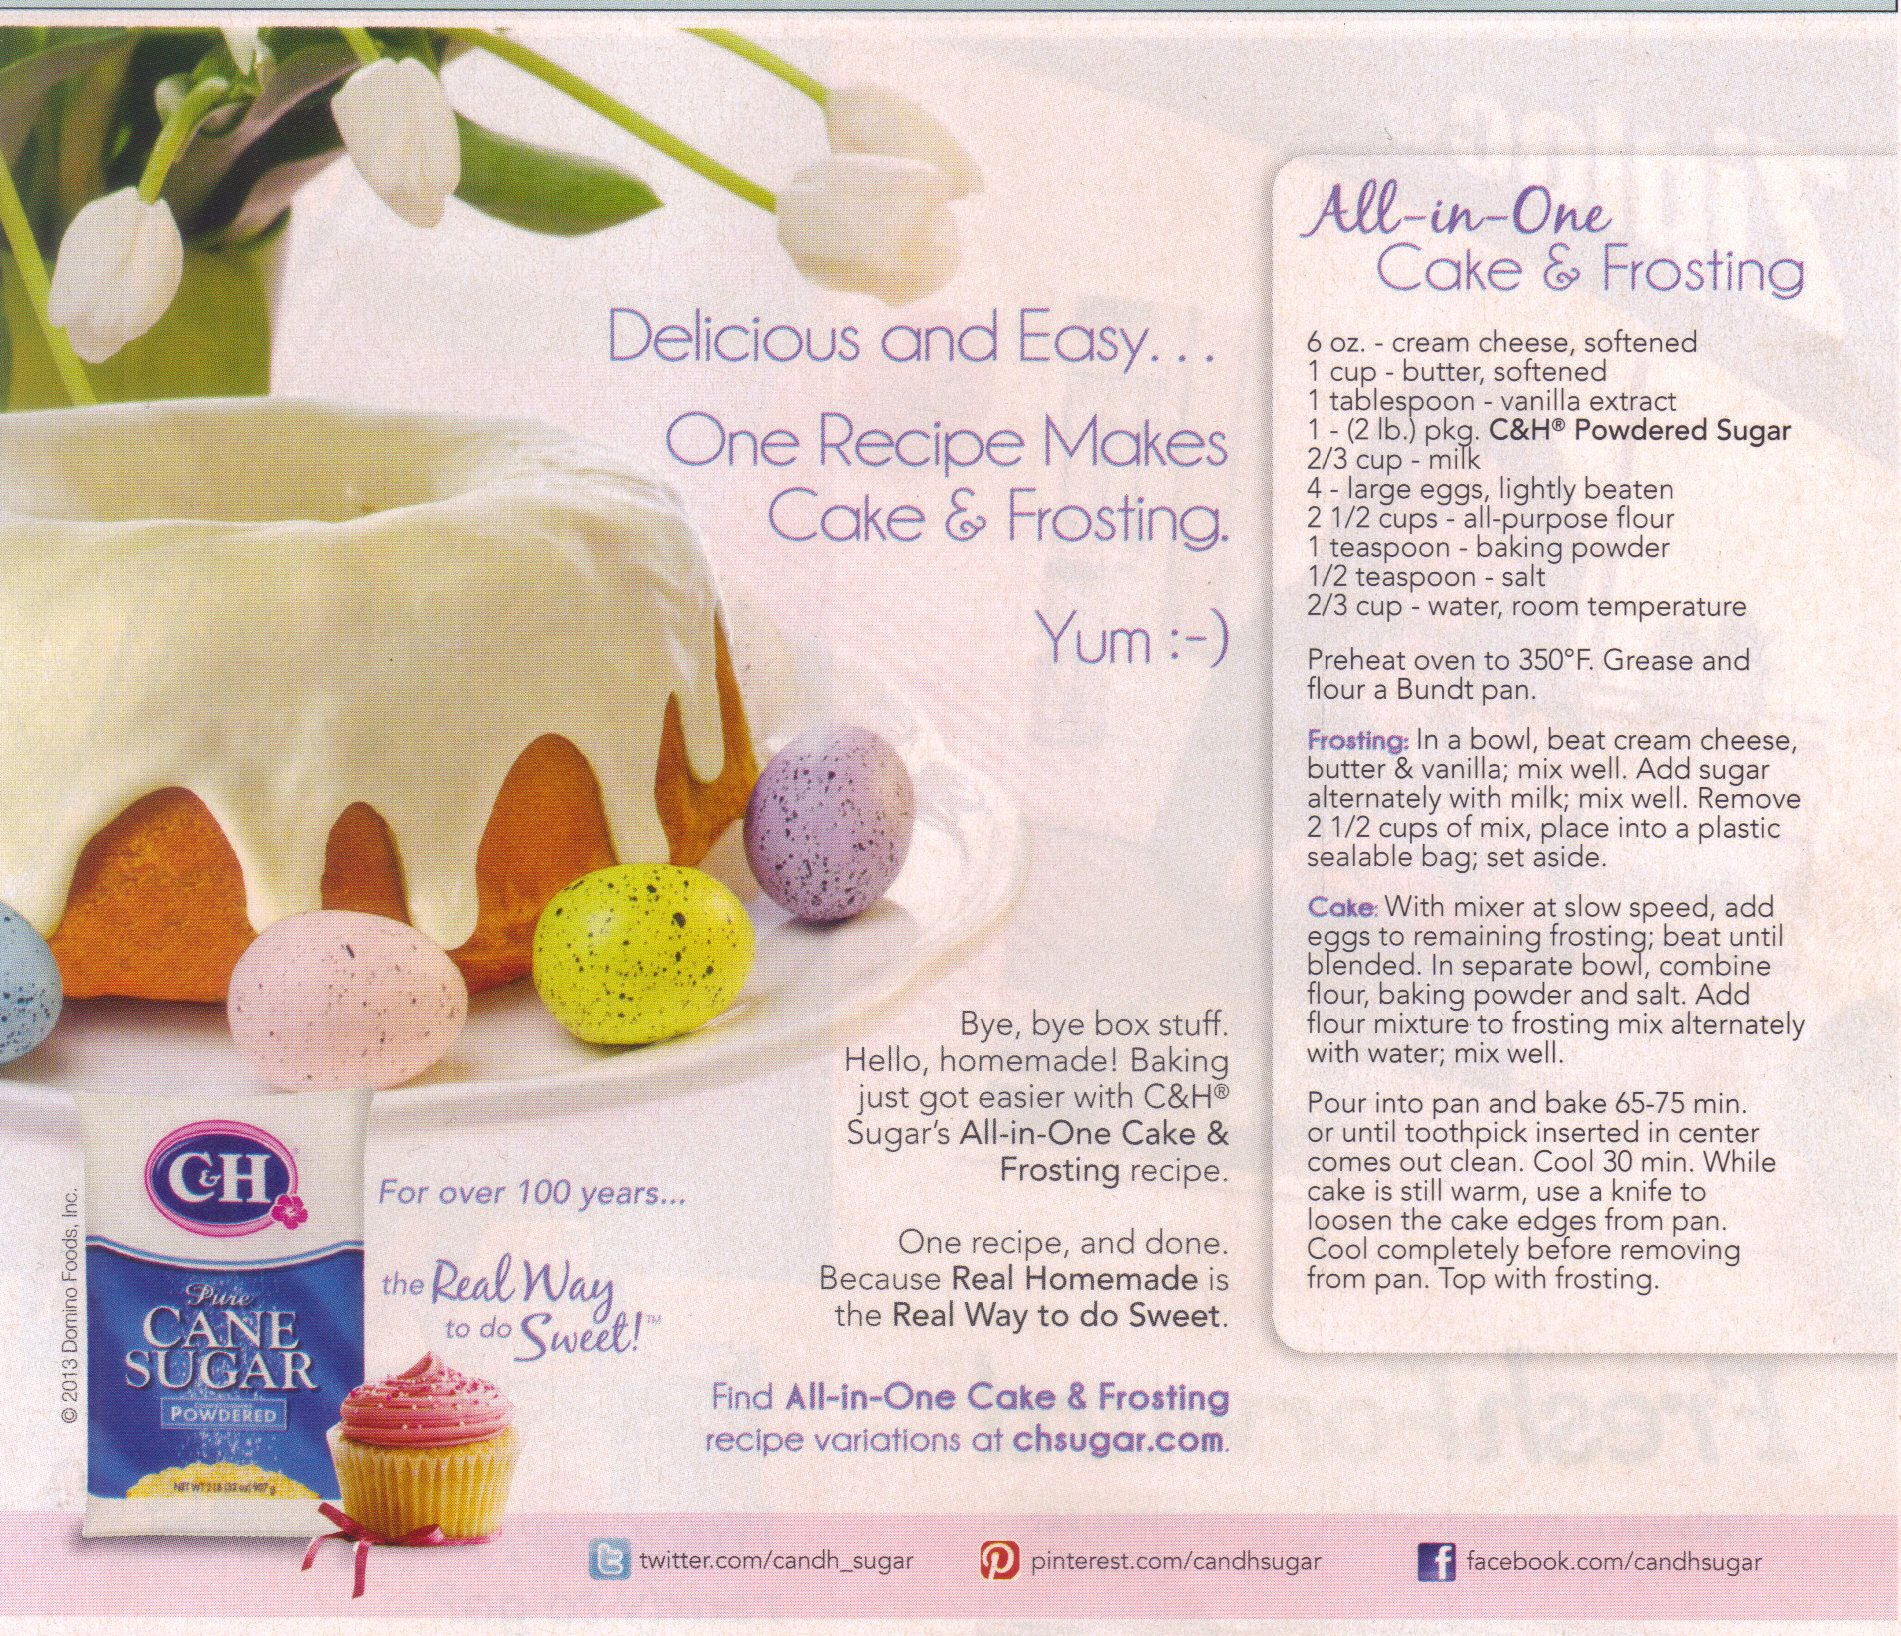 All-in-One Cake and Frosting